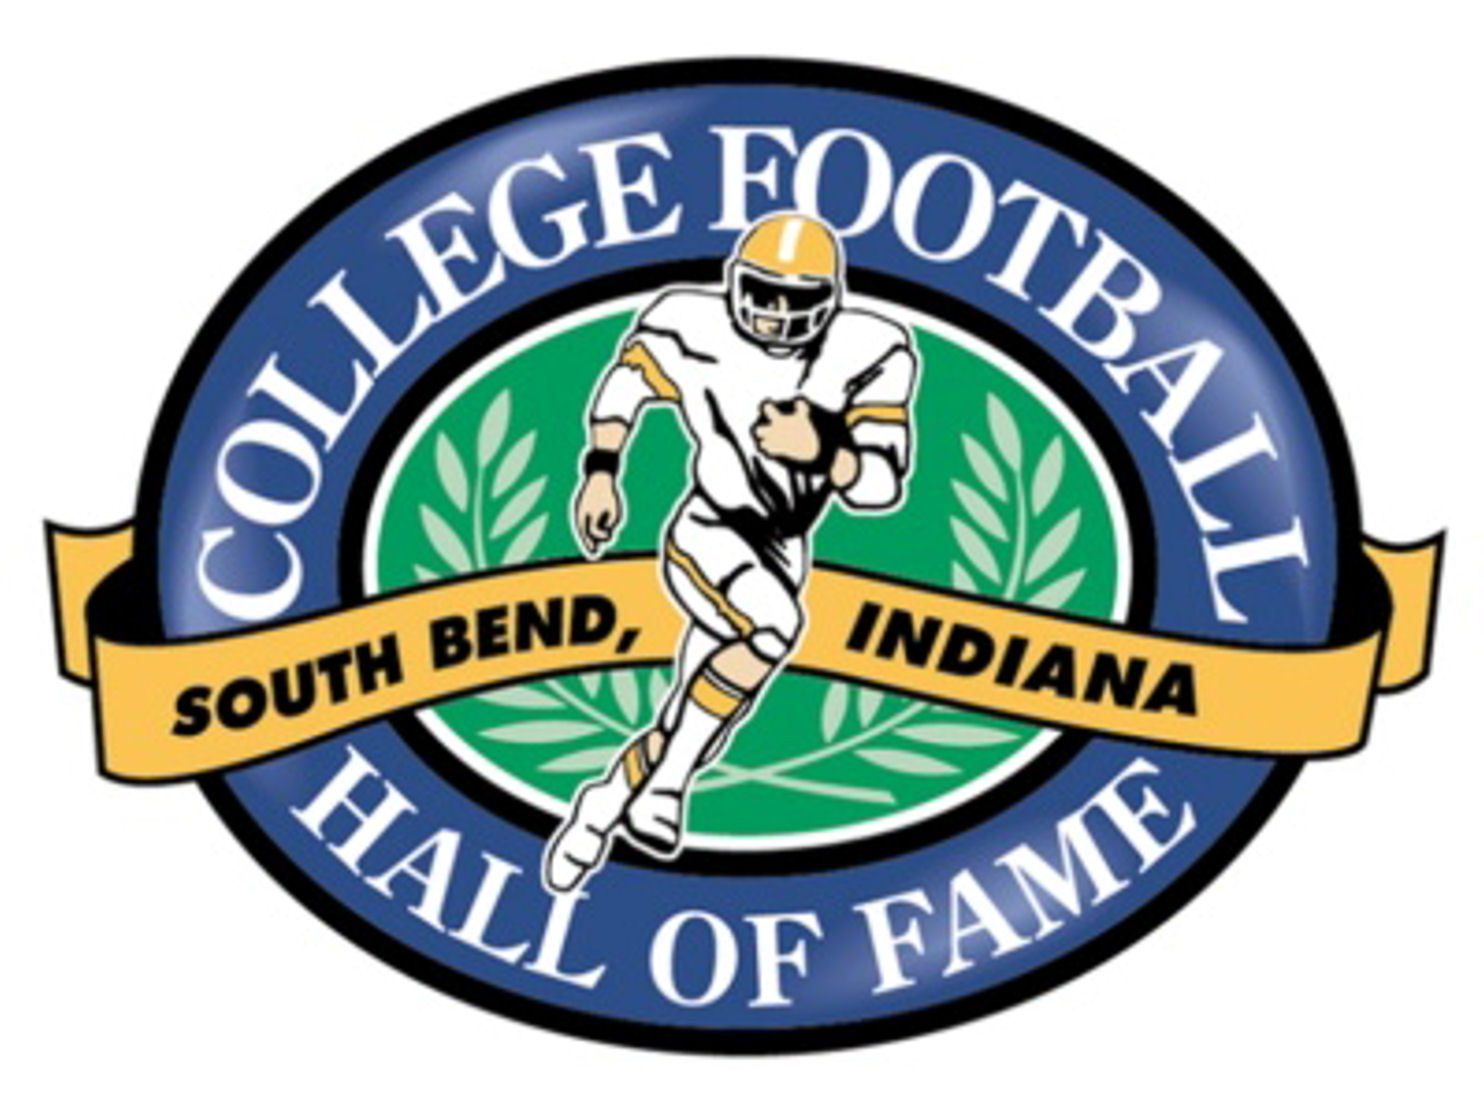 College Football Hall of Fame Logo College Football Hall of Fame